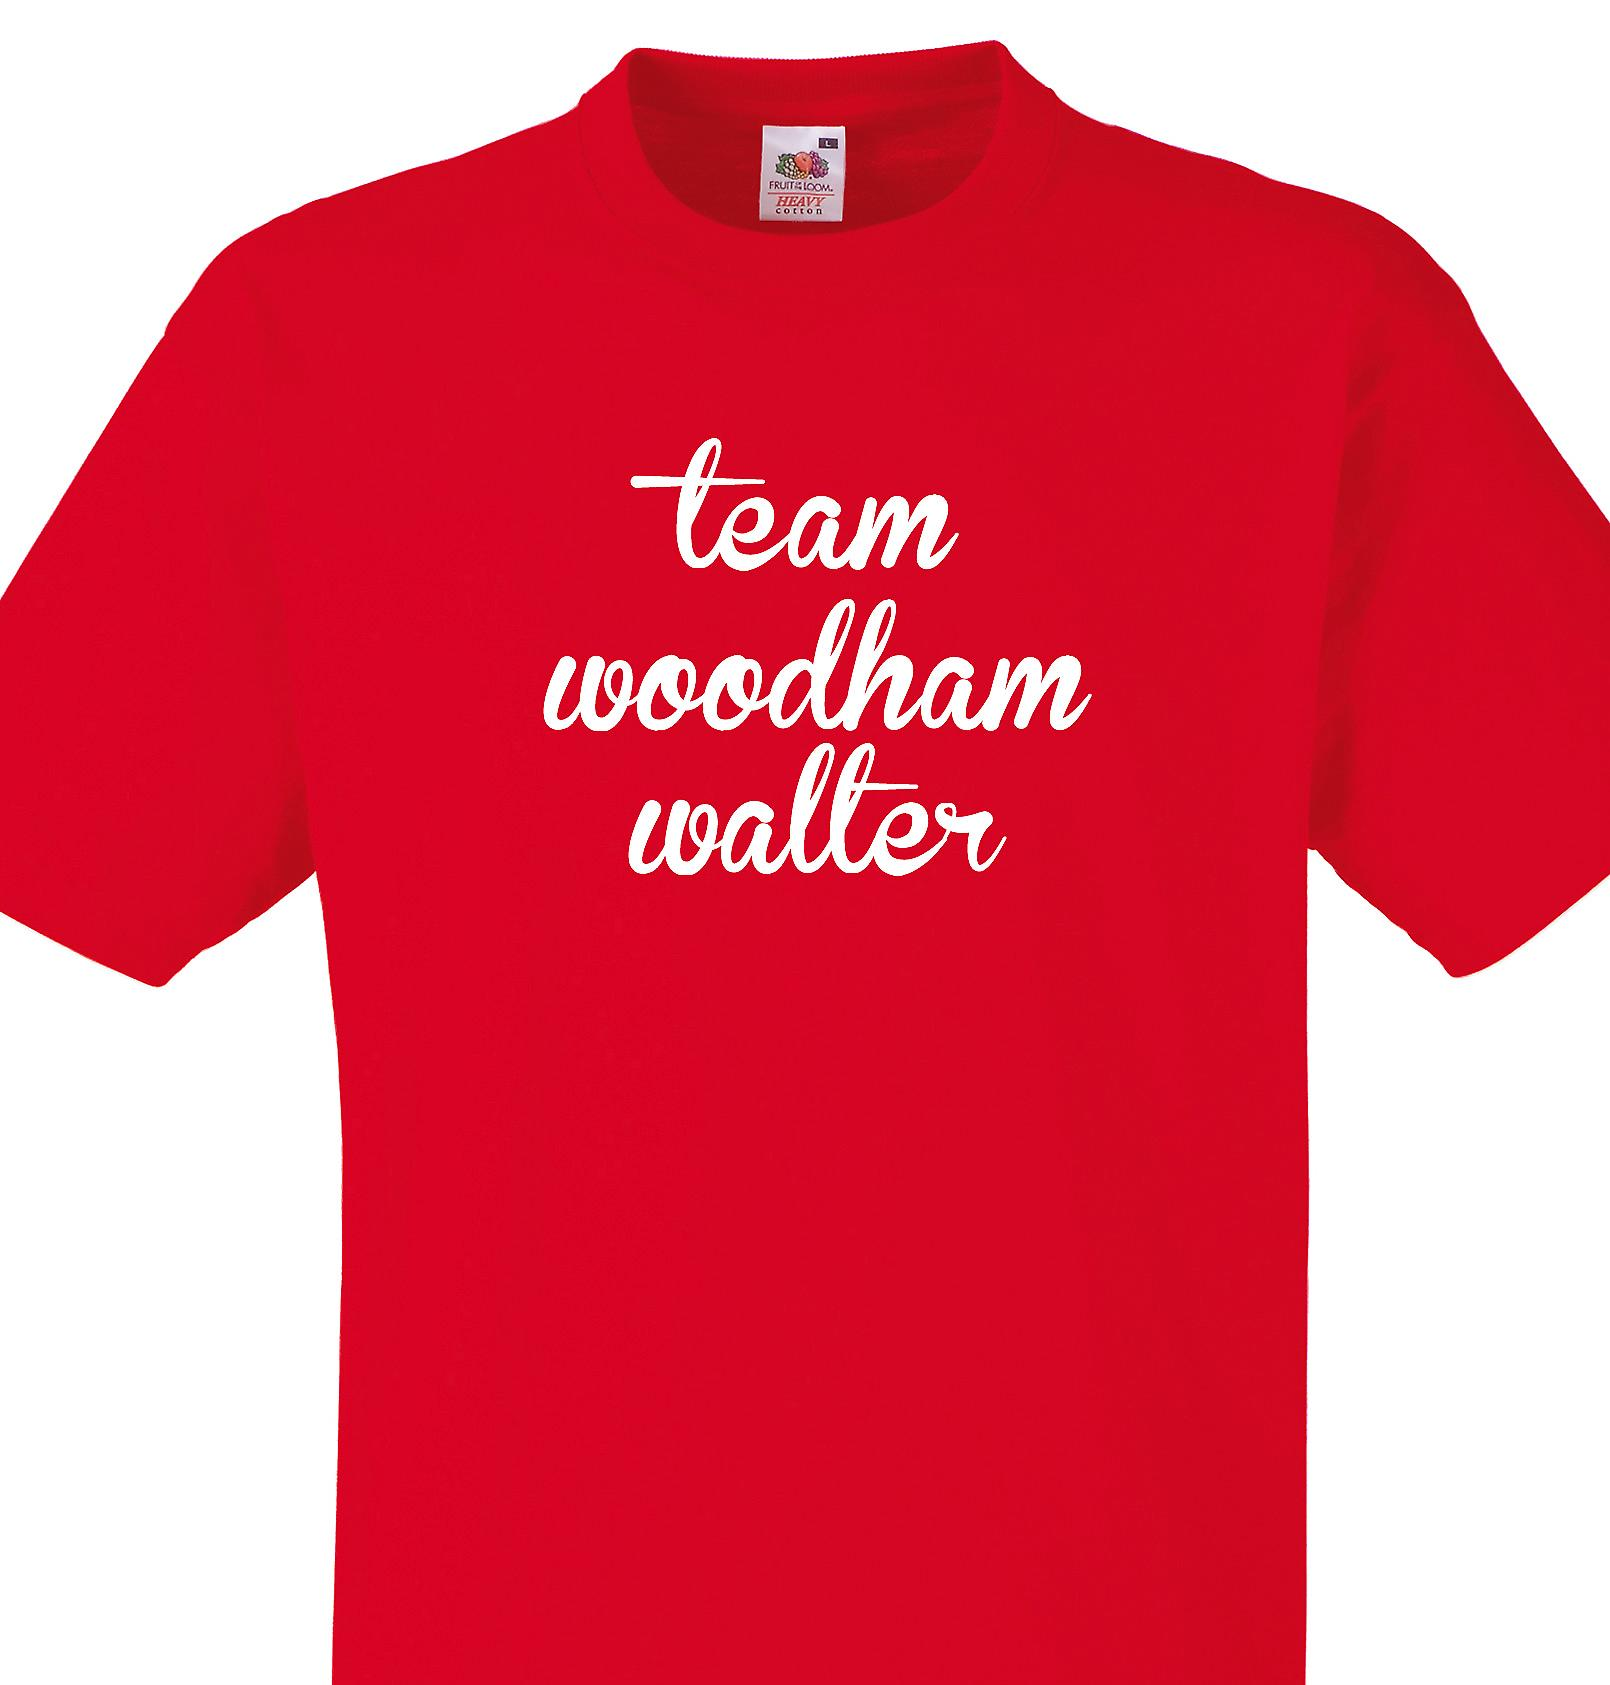 Team Woodham walter Red T shirt